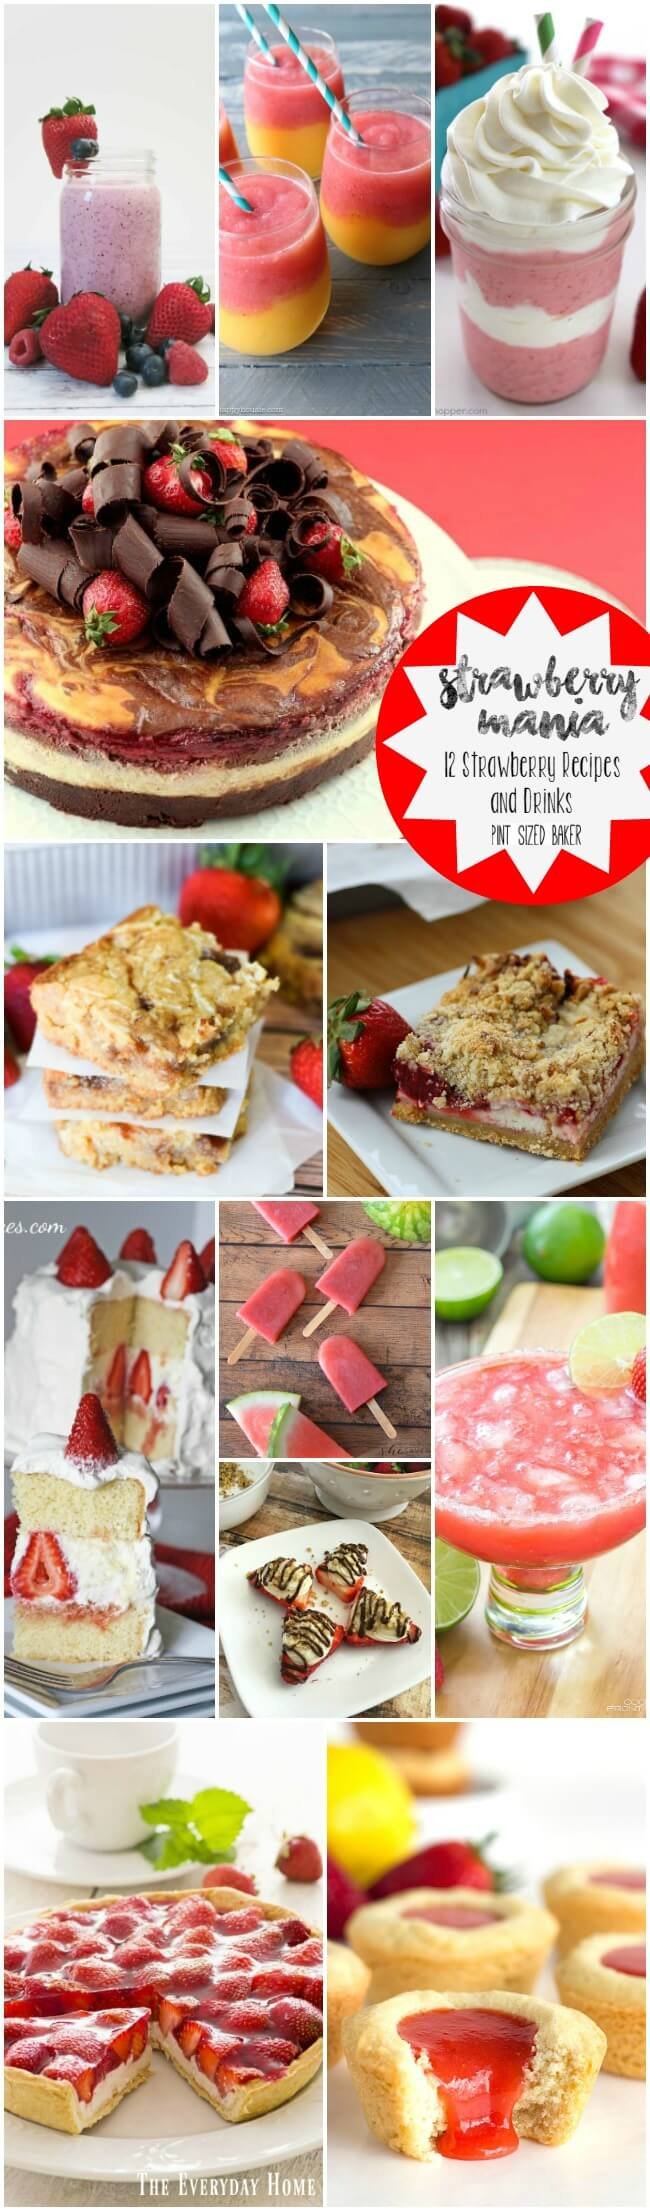 It's Strawberry Mania!! 12 Great Strawberry desserts and drinks for all the strawberry lovers!